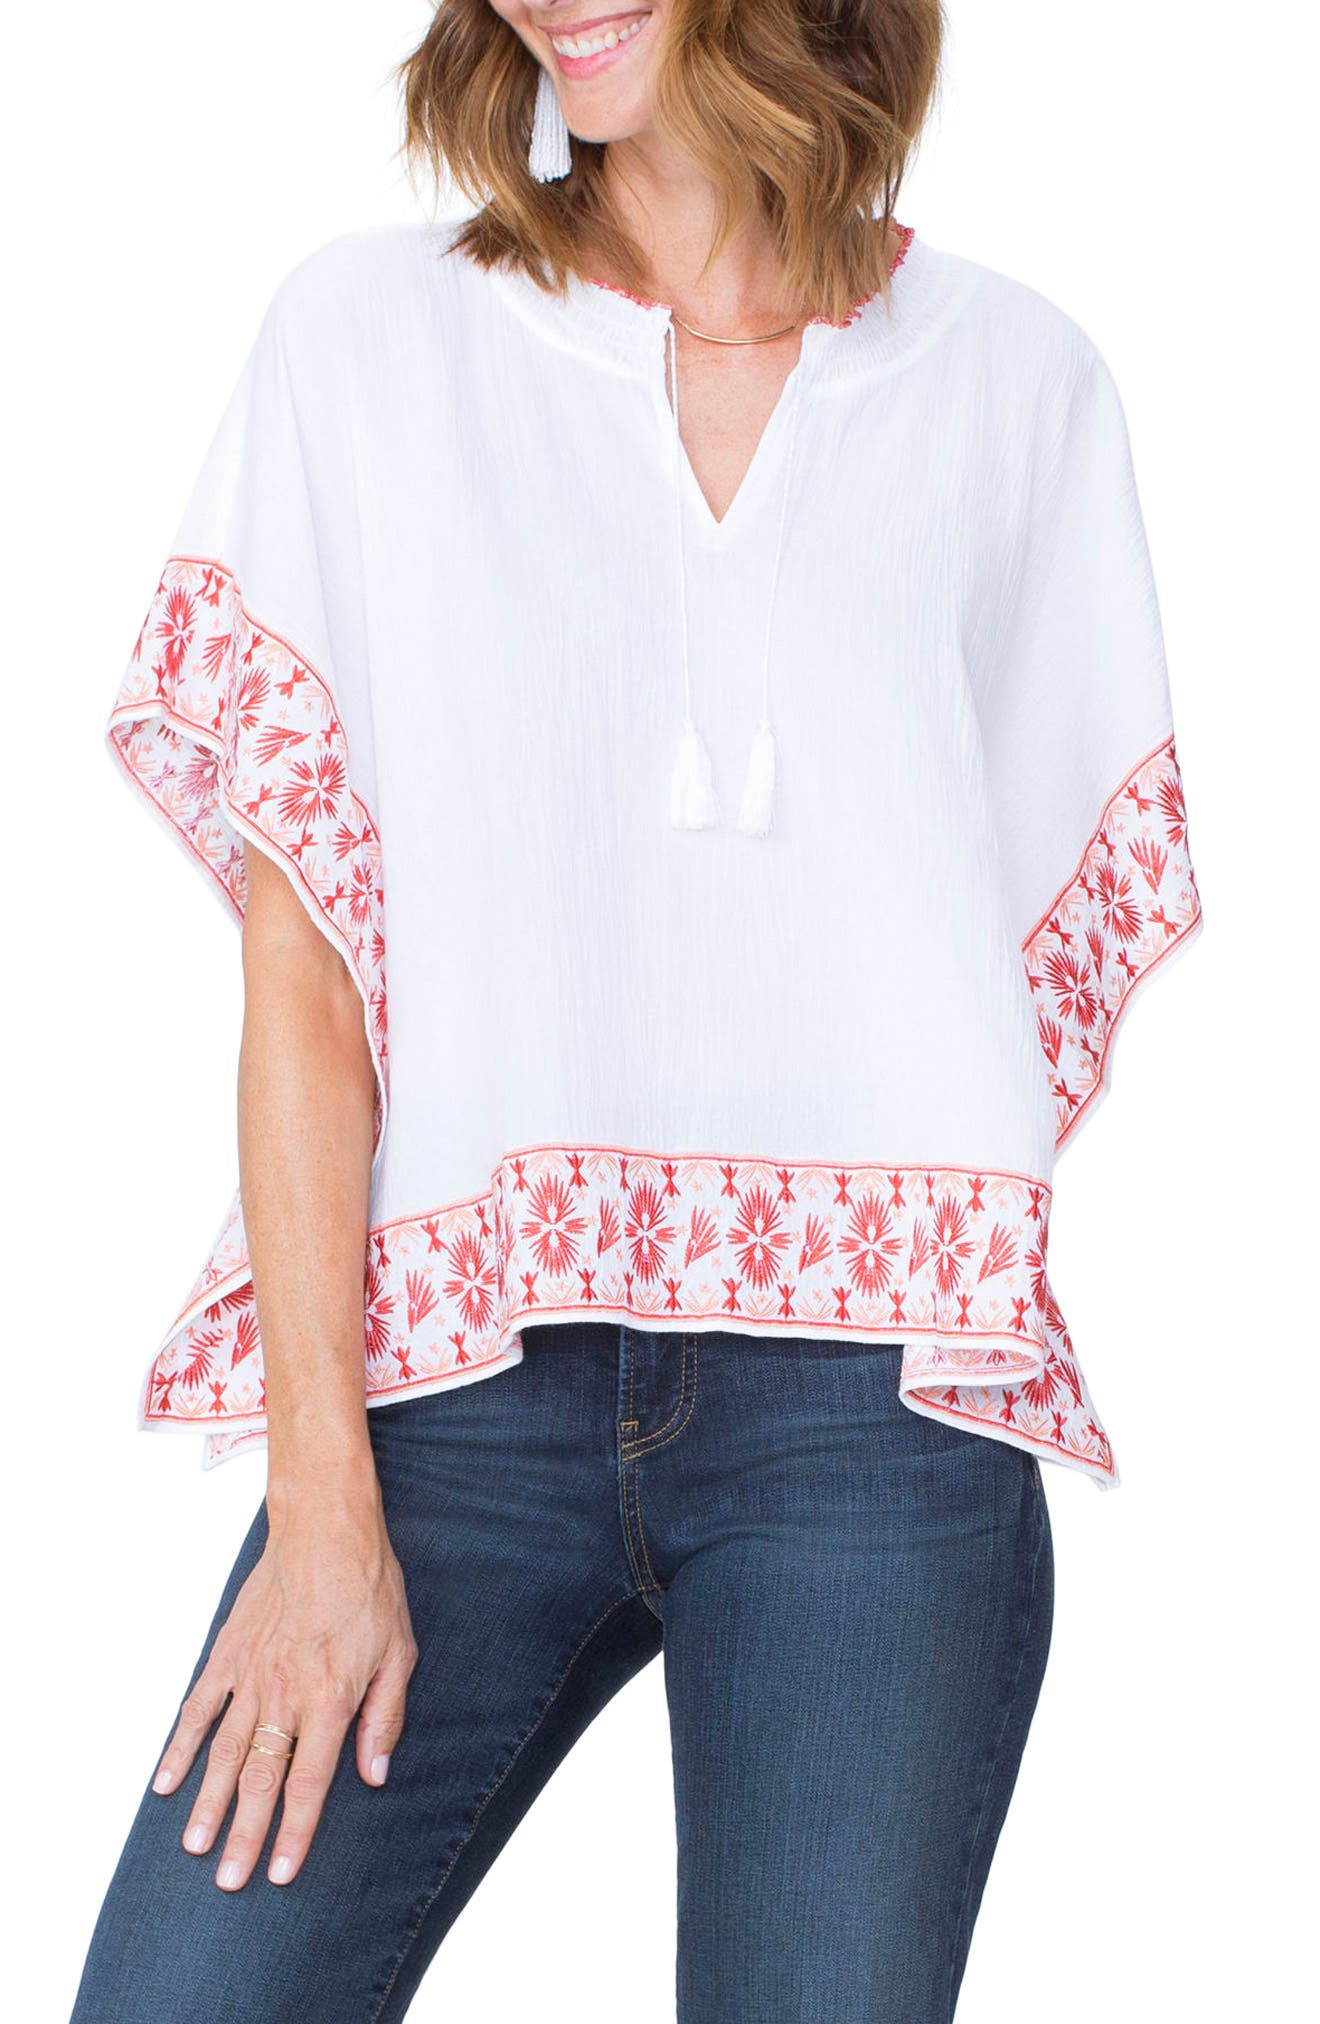 Cascade Embroidery Popover Top,                             Main thumbnail 1, color,                             115